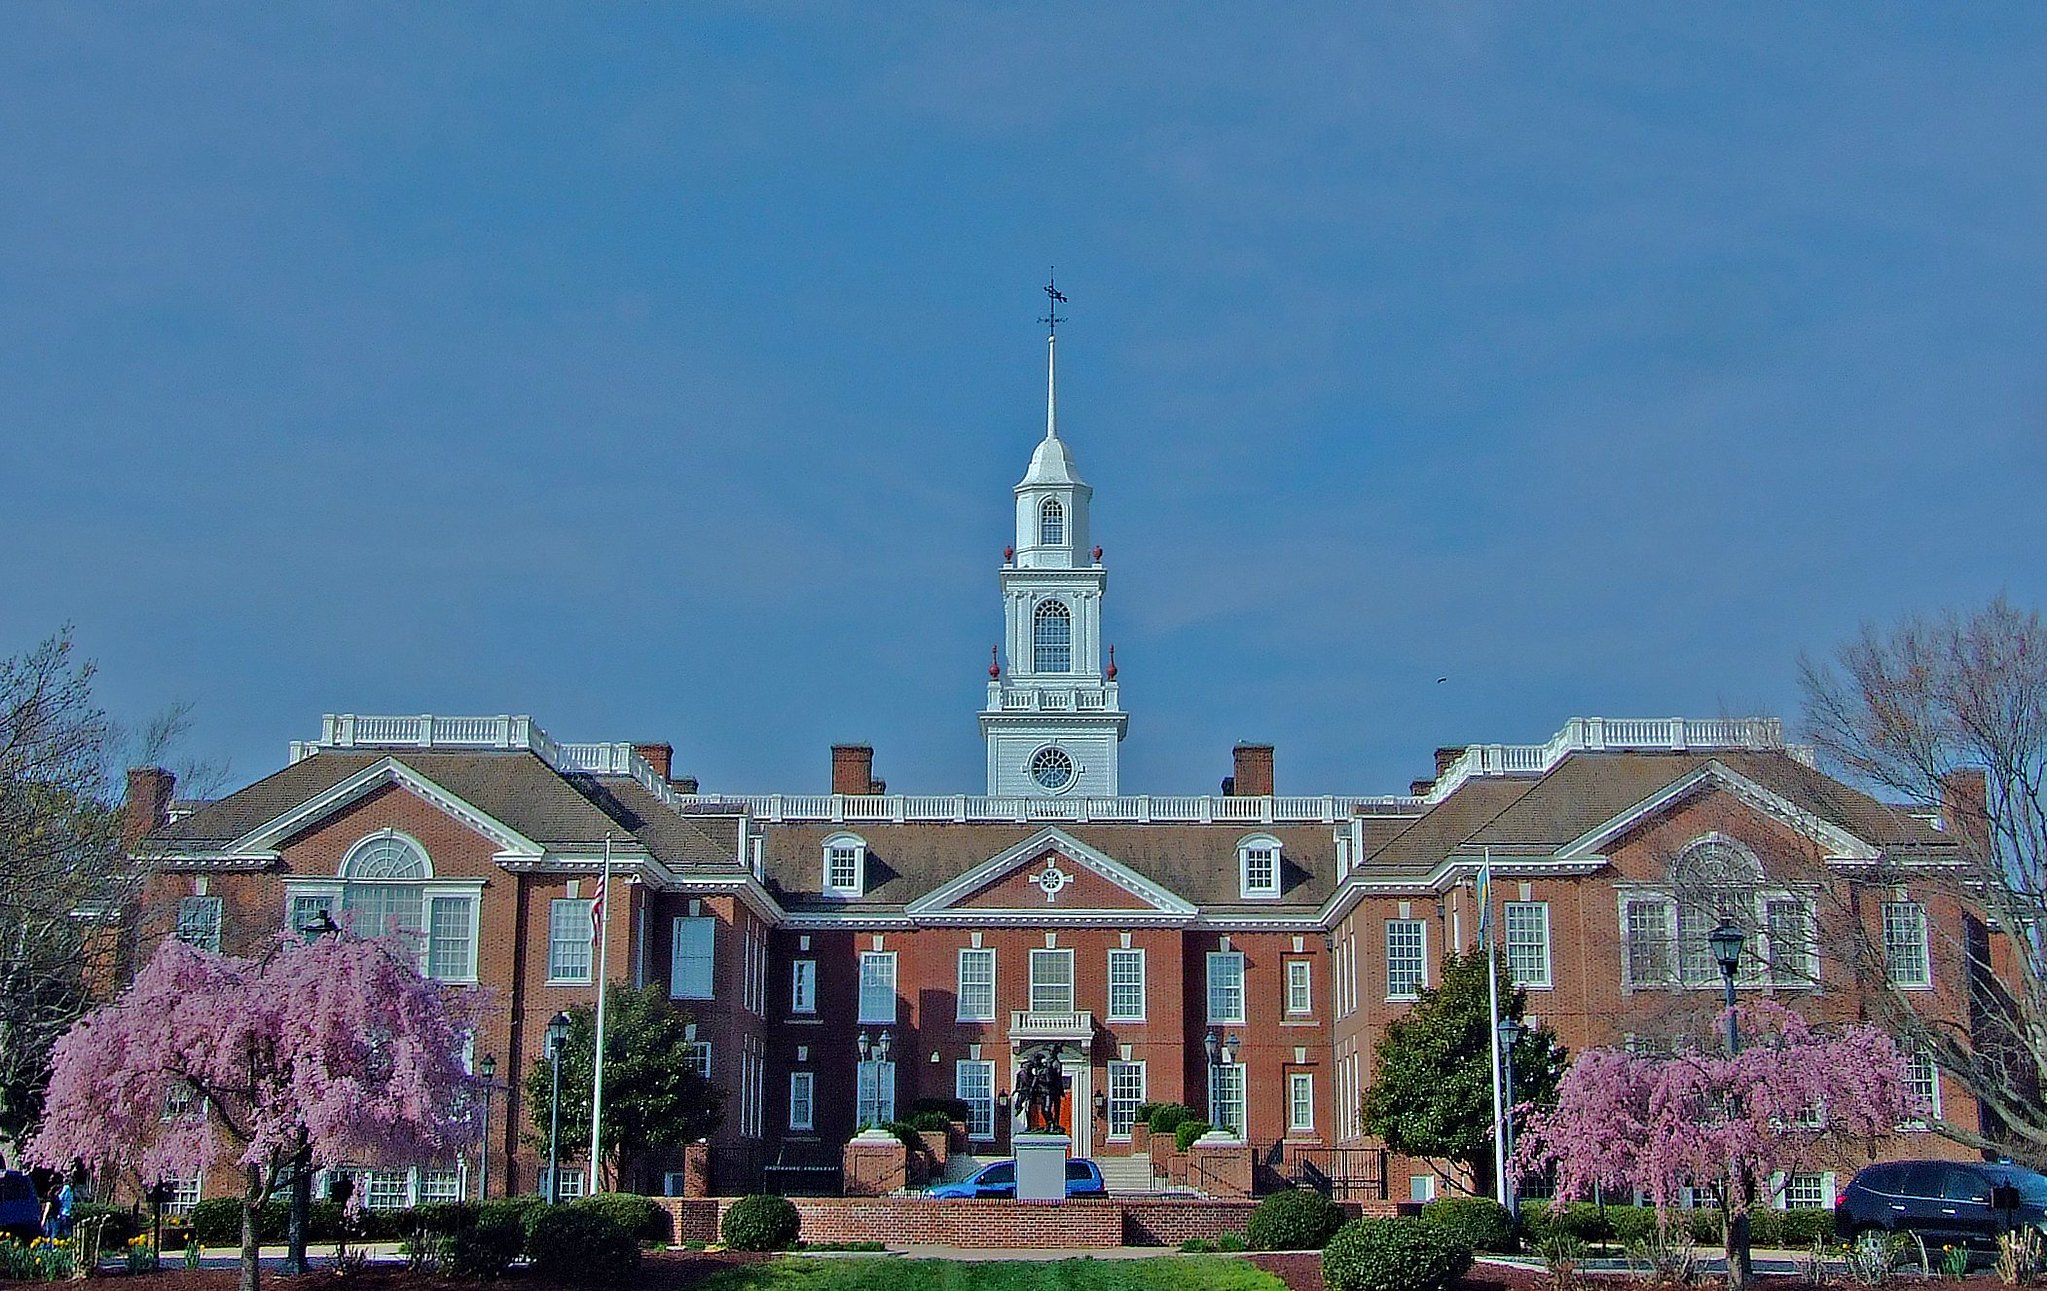 Delaware Statehouse in Dover. Photo by Dennis Deitrick on Flickr (noncommercial use permitted with attribution / share alike).